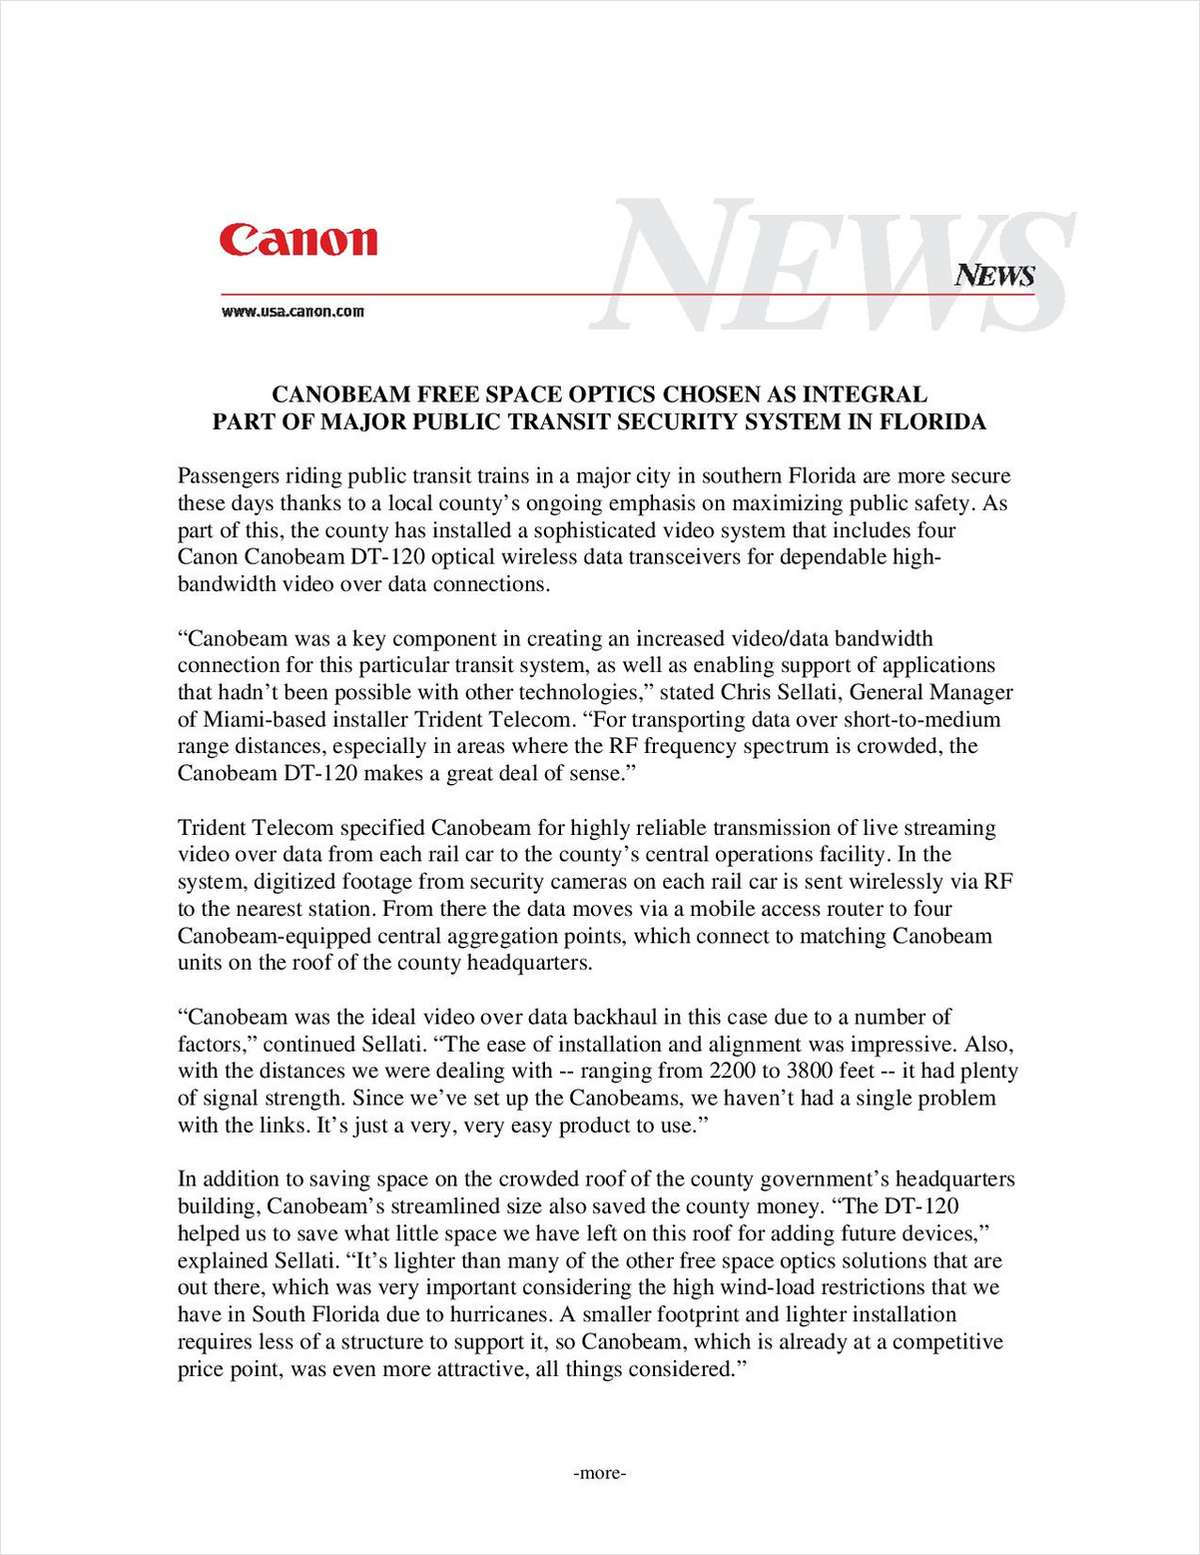 Free Space Optics from Canon Provides Reliable Solution for Trident Telecom